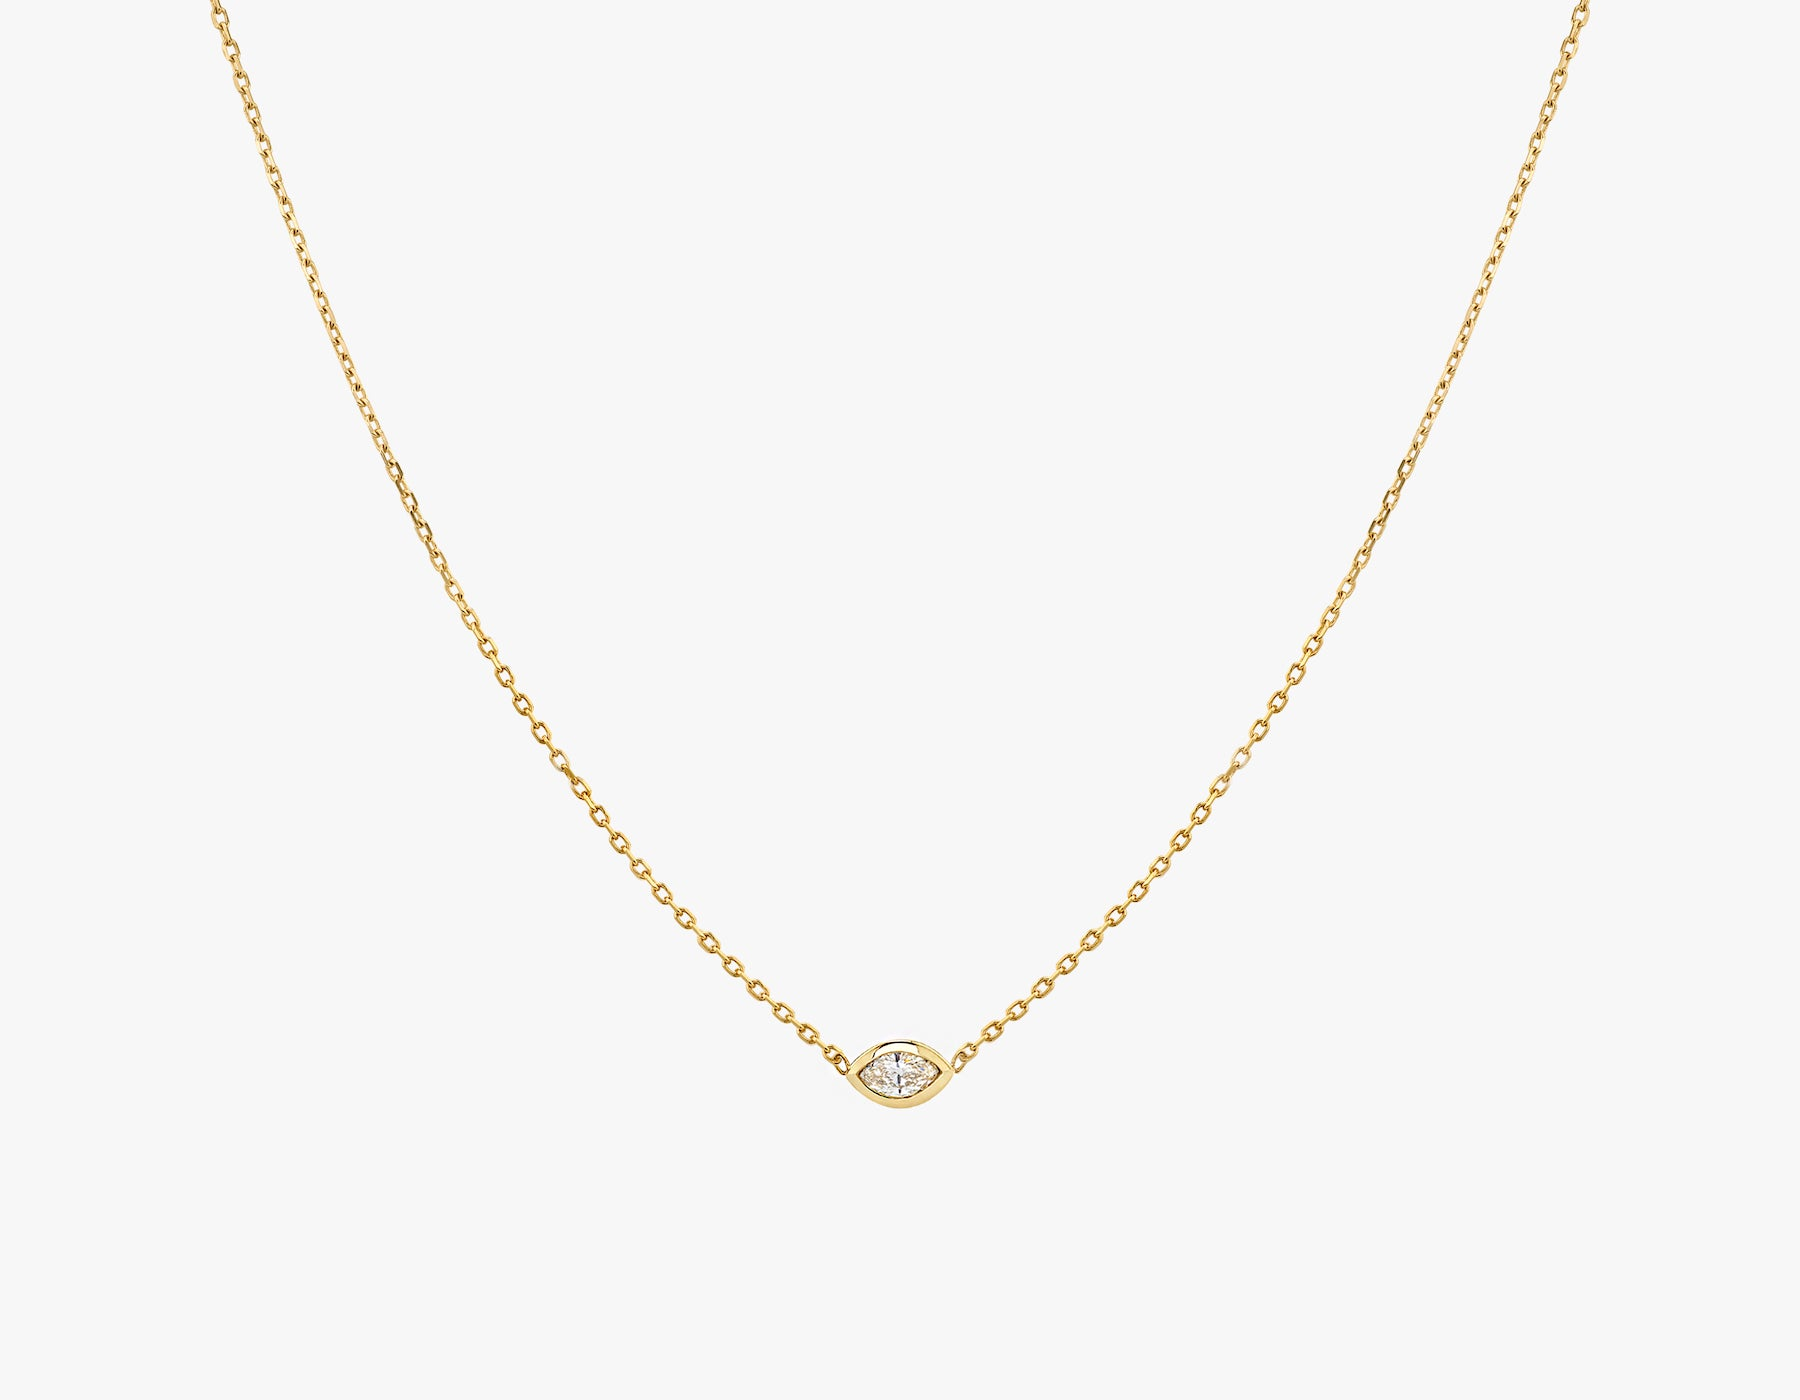 Vrai simple minimalist Marquise Diamond Bezel Necklace, 14K Yellow Gold